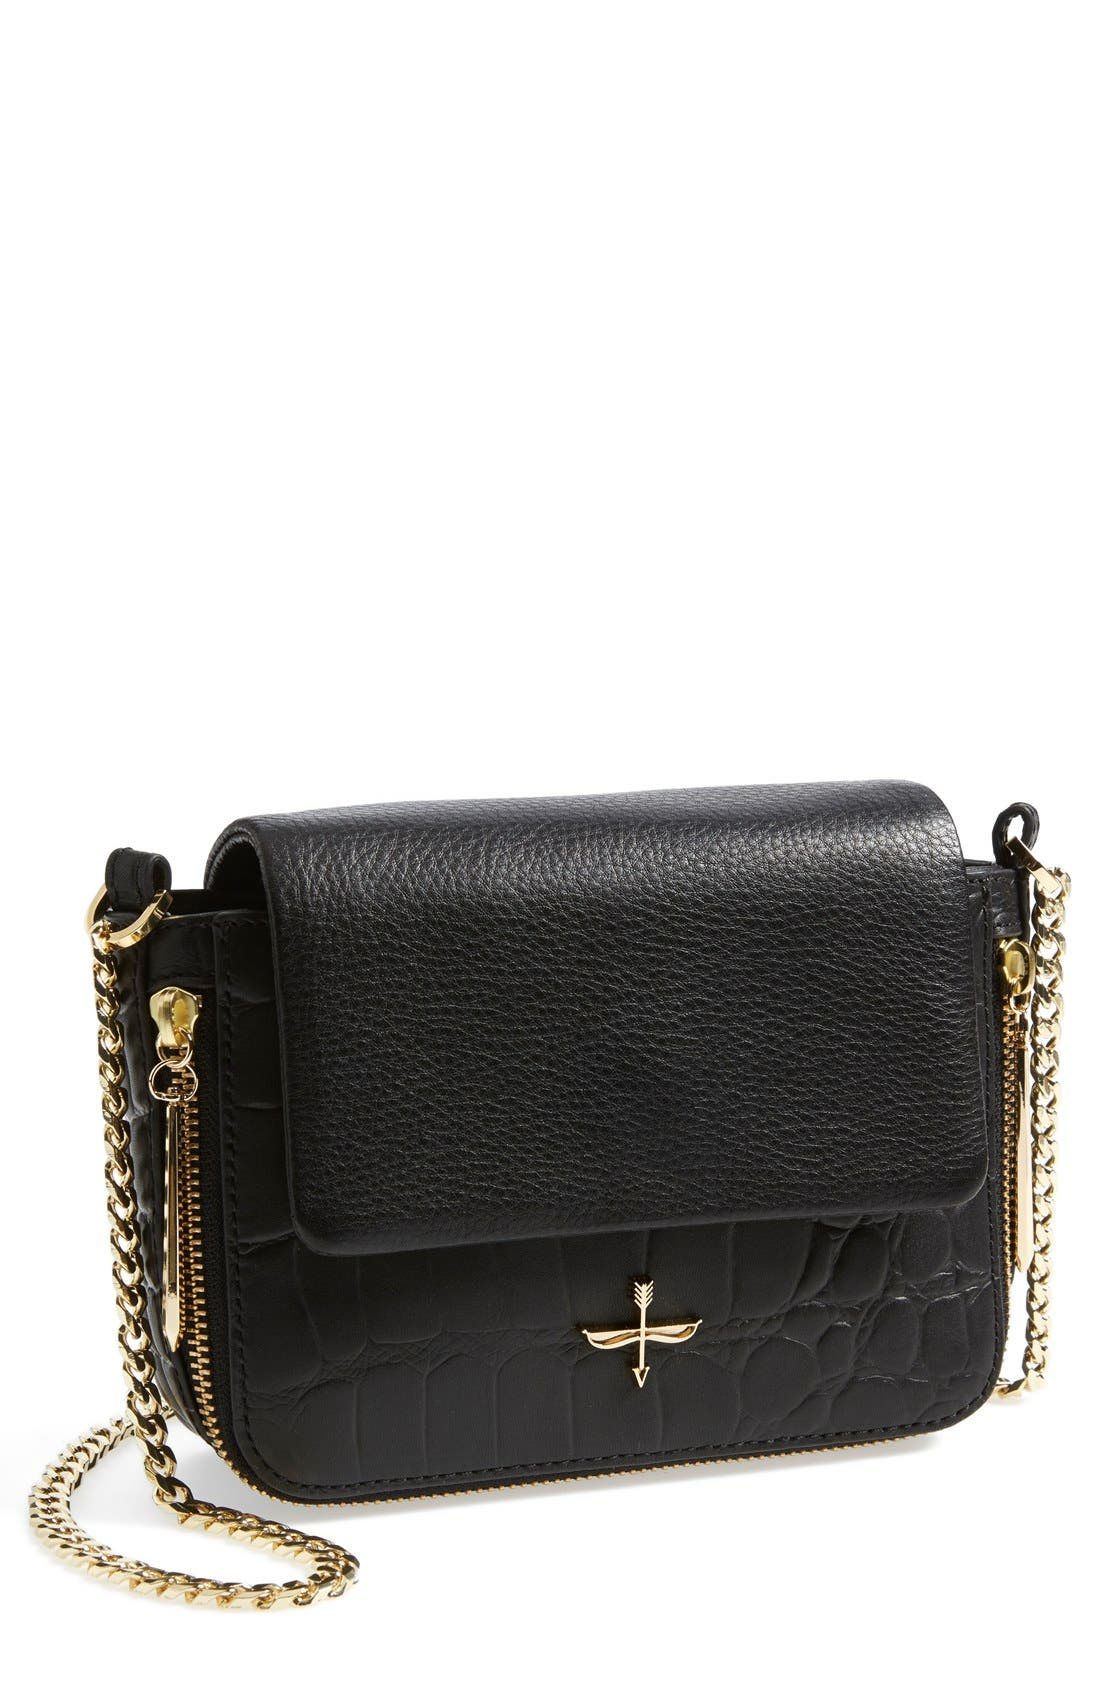 Alternate Image 1 Selected - Pour la Victoire 'Alsace' Crossbody Bag